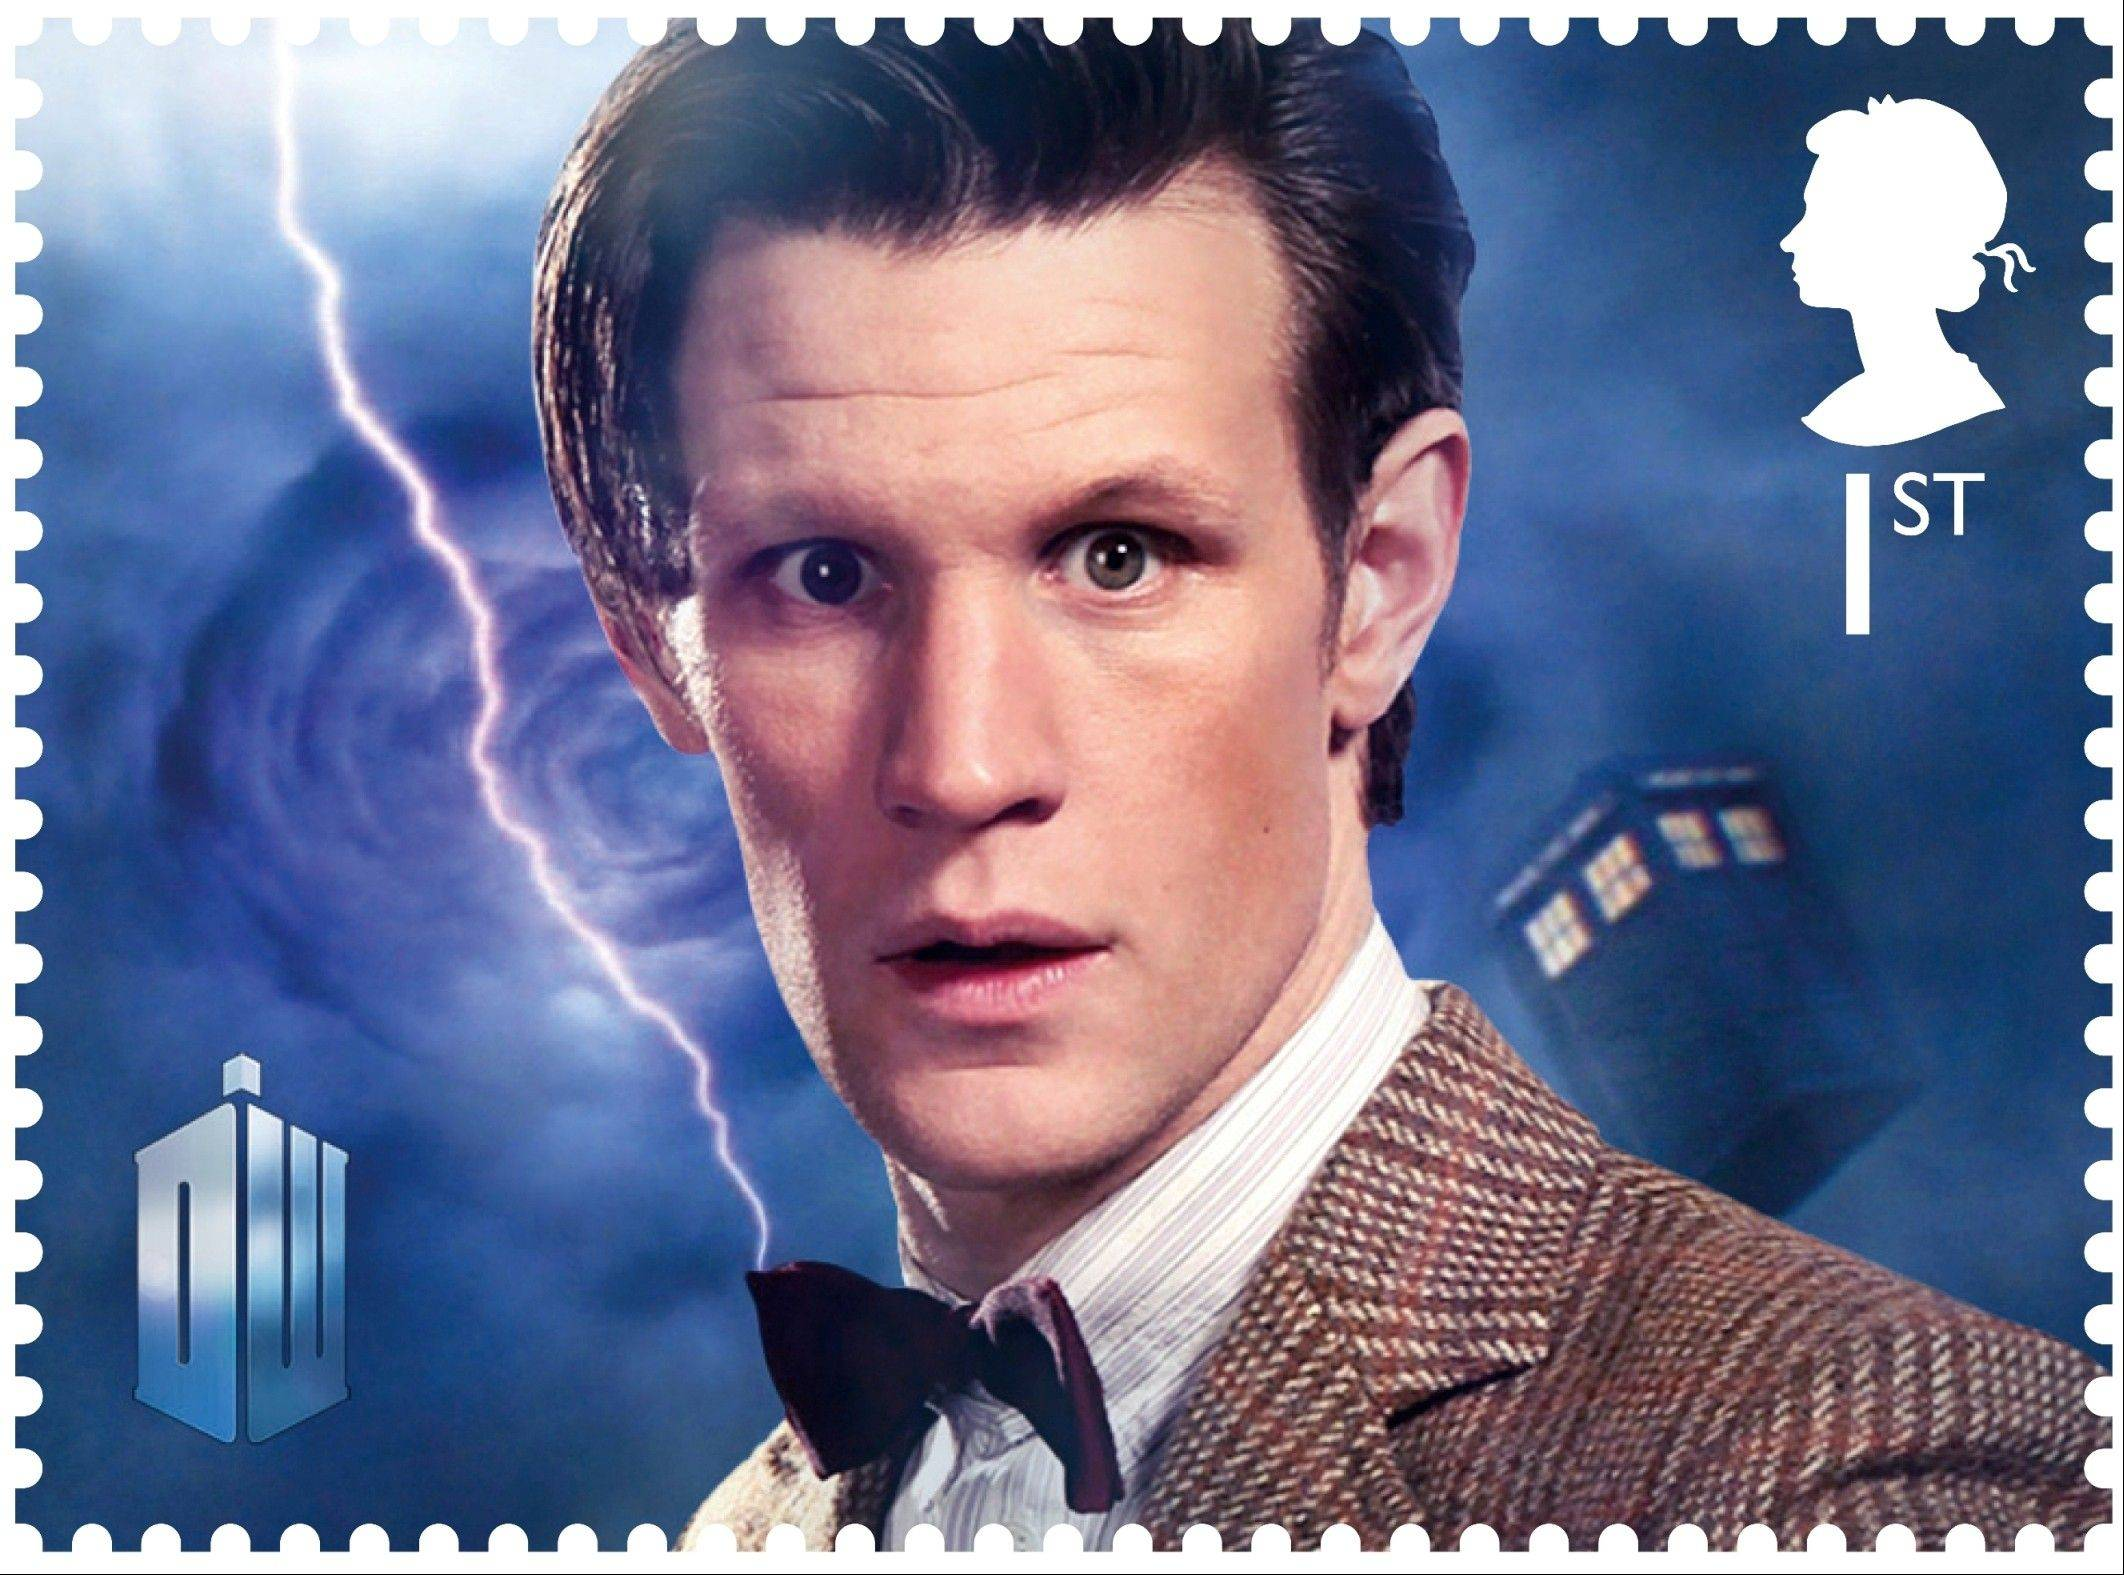 "Britain's Royal Mail is marking the 50th anniversary of ""Doctor Who,'' the science fiction program, with a series of stamps featuring each of the 11 actors who have played the title role. Those featured include the present doctor, Matt Smith as well as past Time Lords."